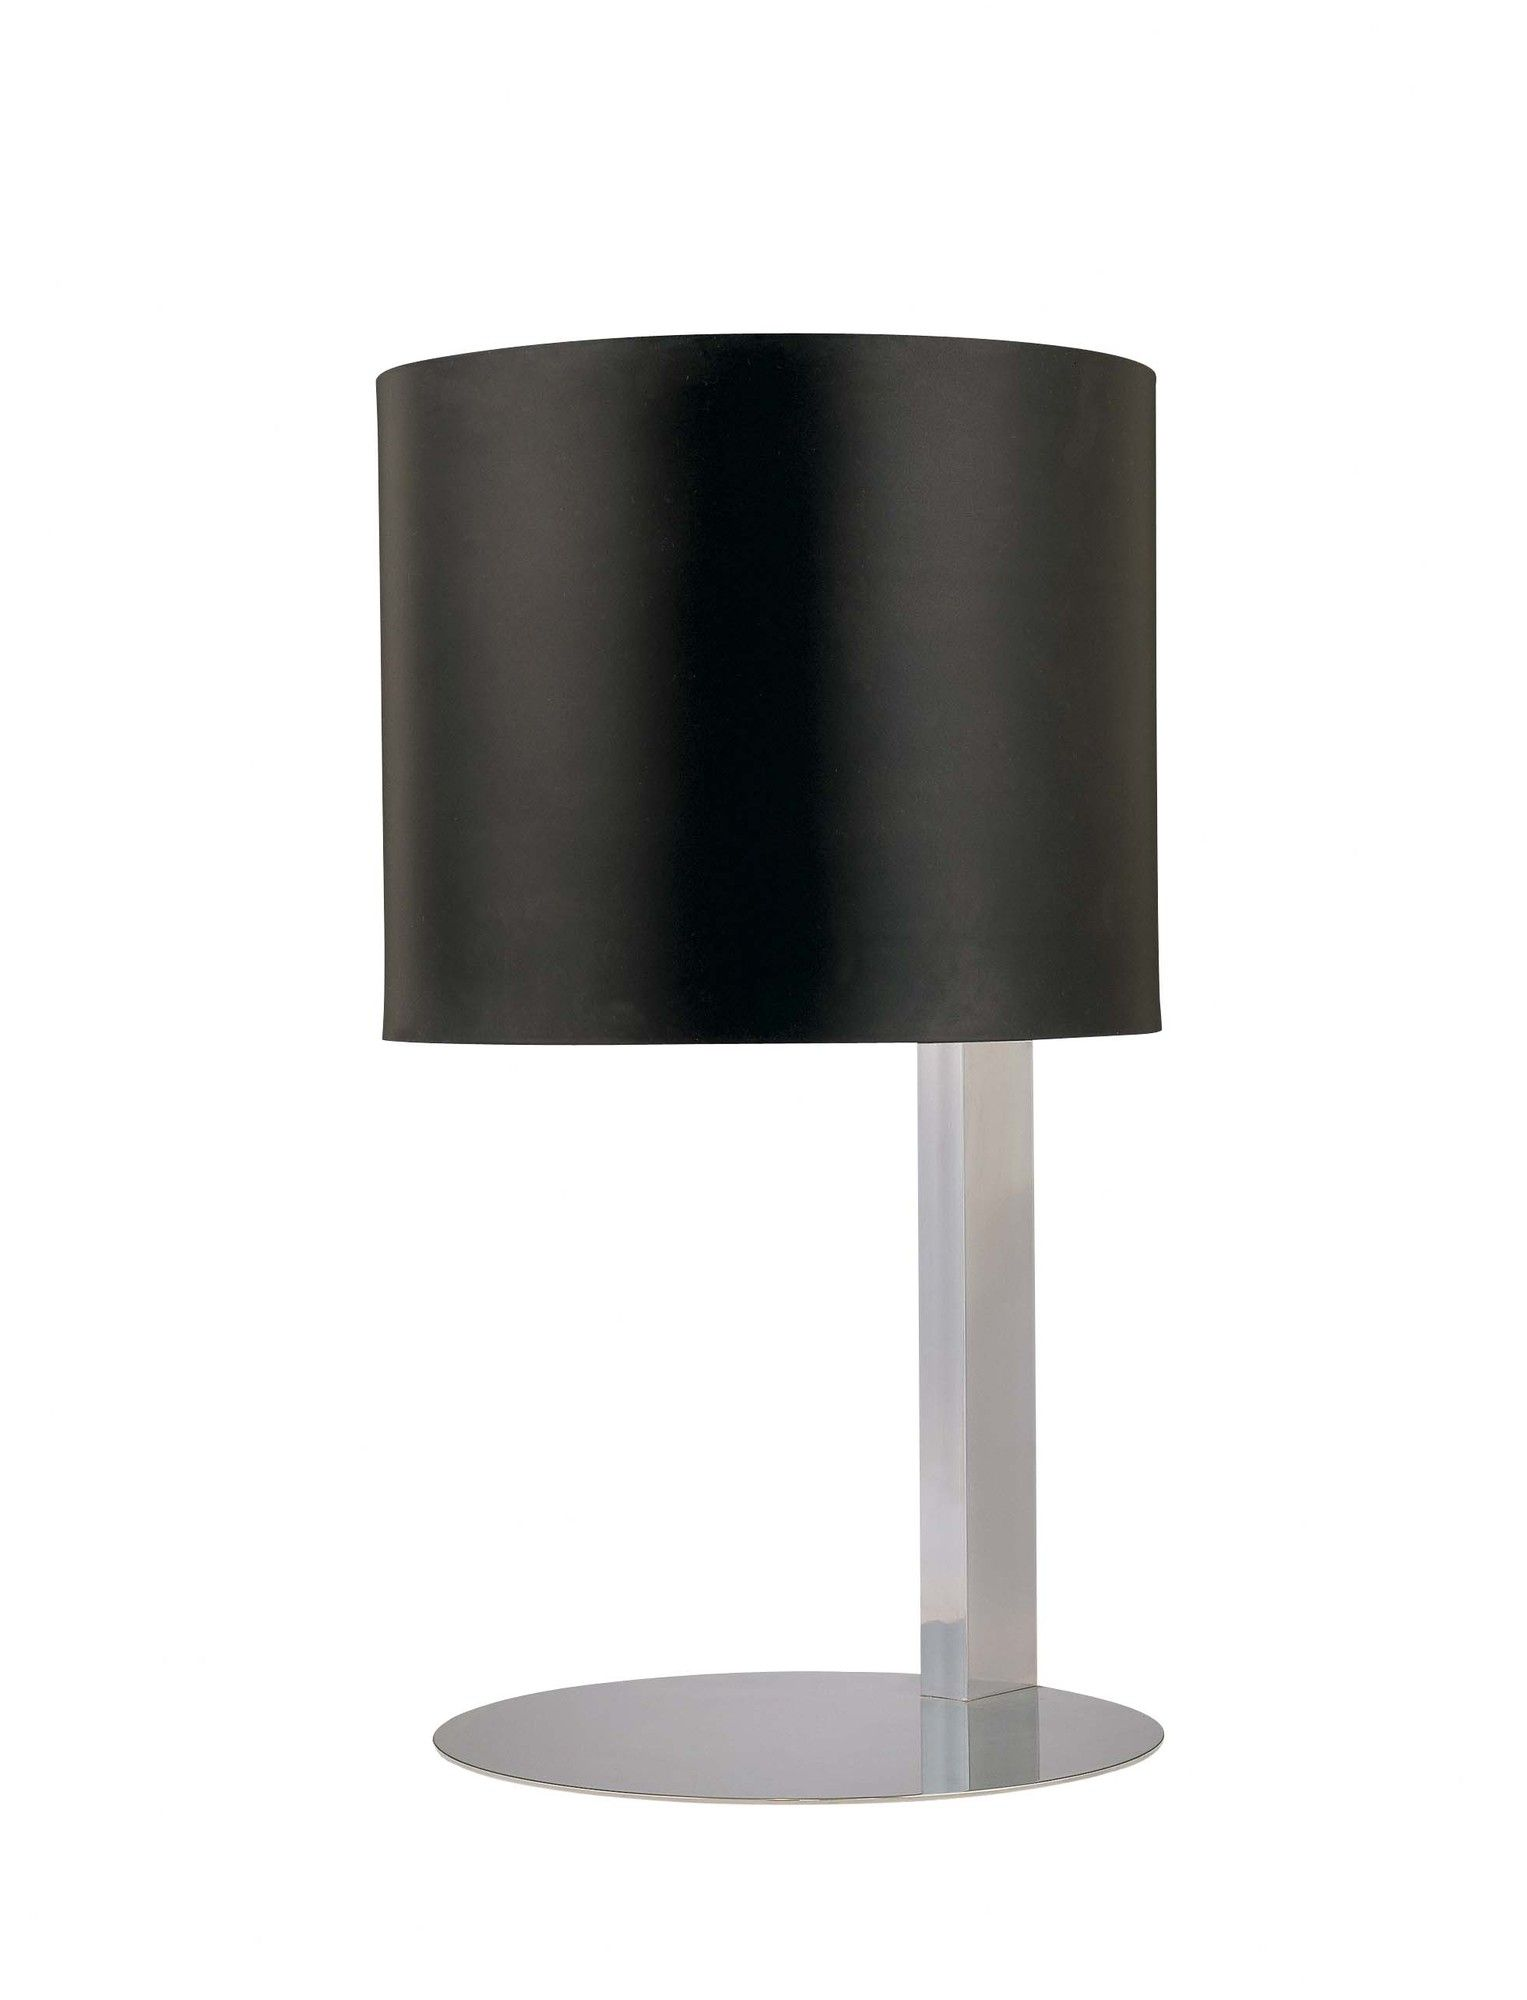 George Kovacs Lamps Table Lamp With Glass Diffuser With Black Painted Metal Shade Glass Diffuser Table Lamp Lamp